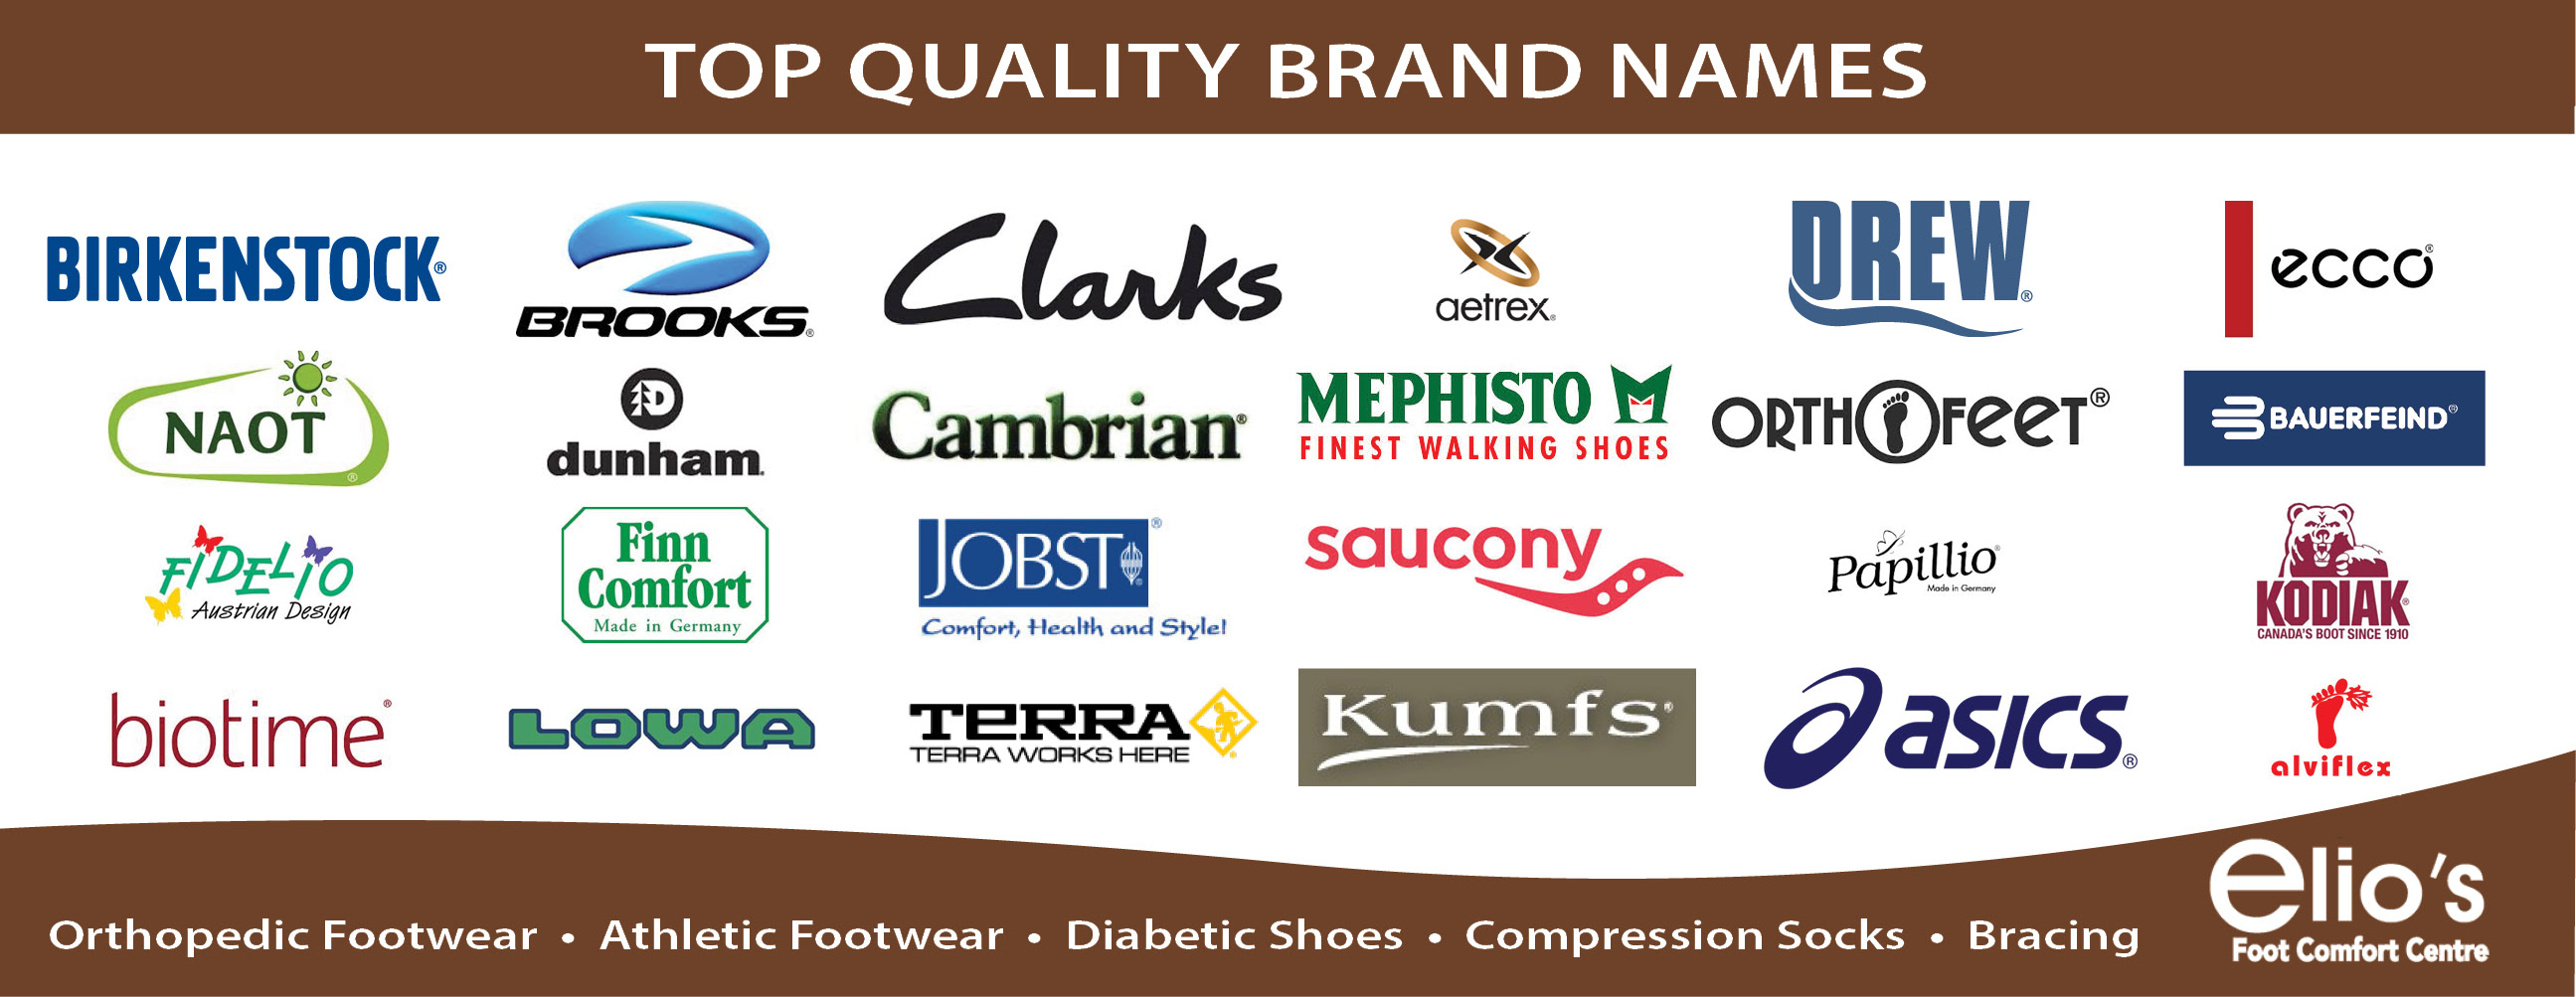 Brands Elio's Foot Comfort Centre